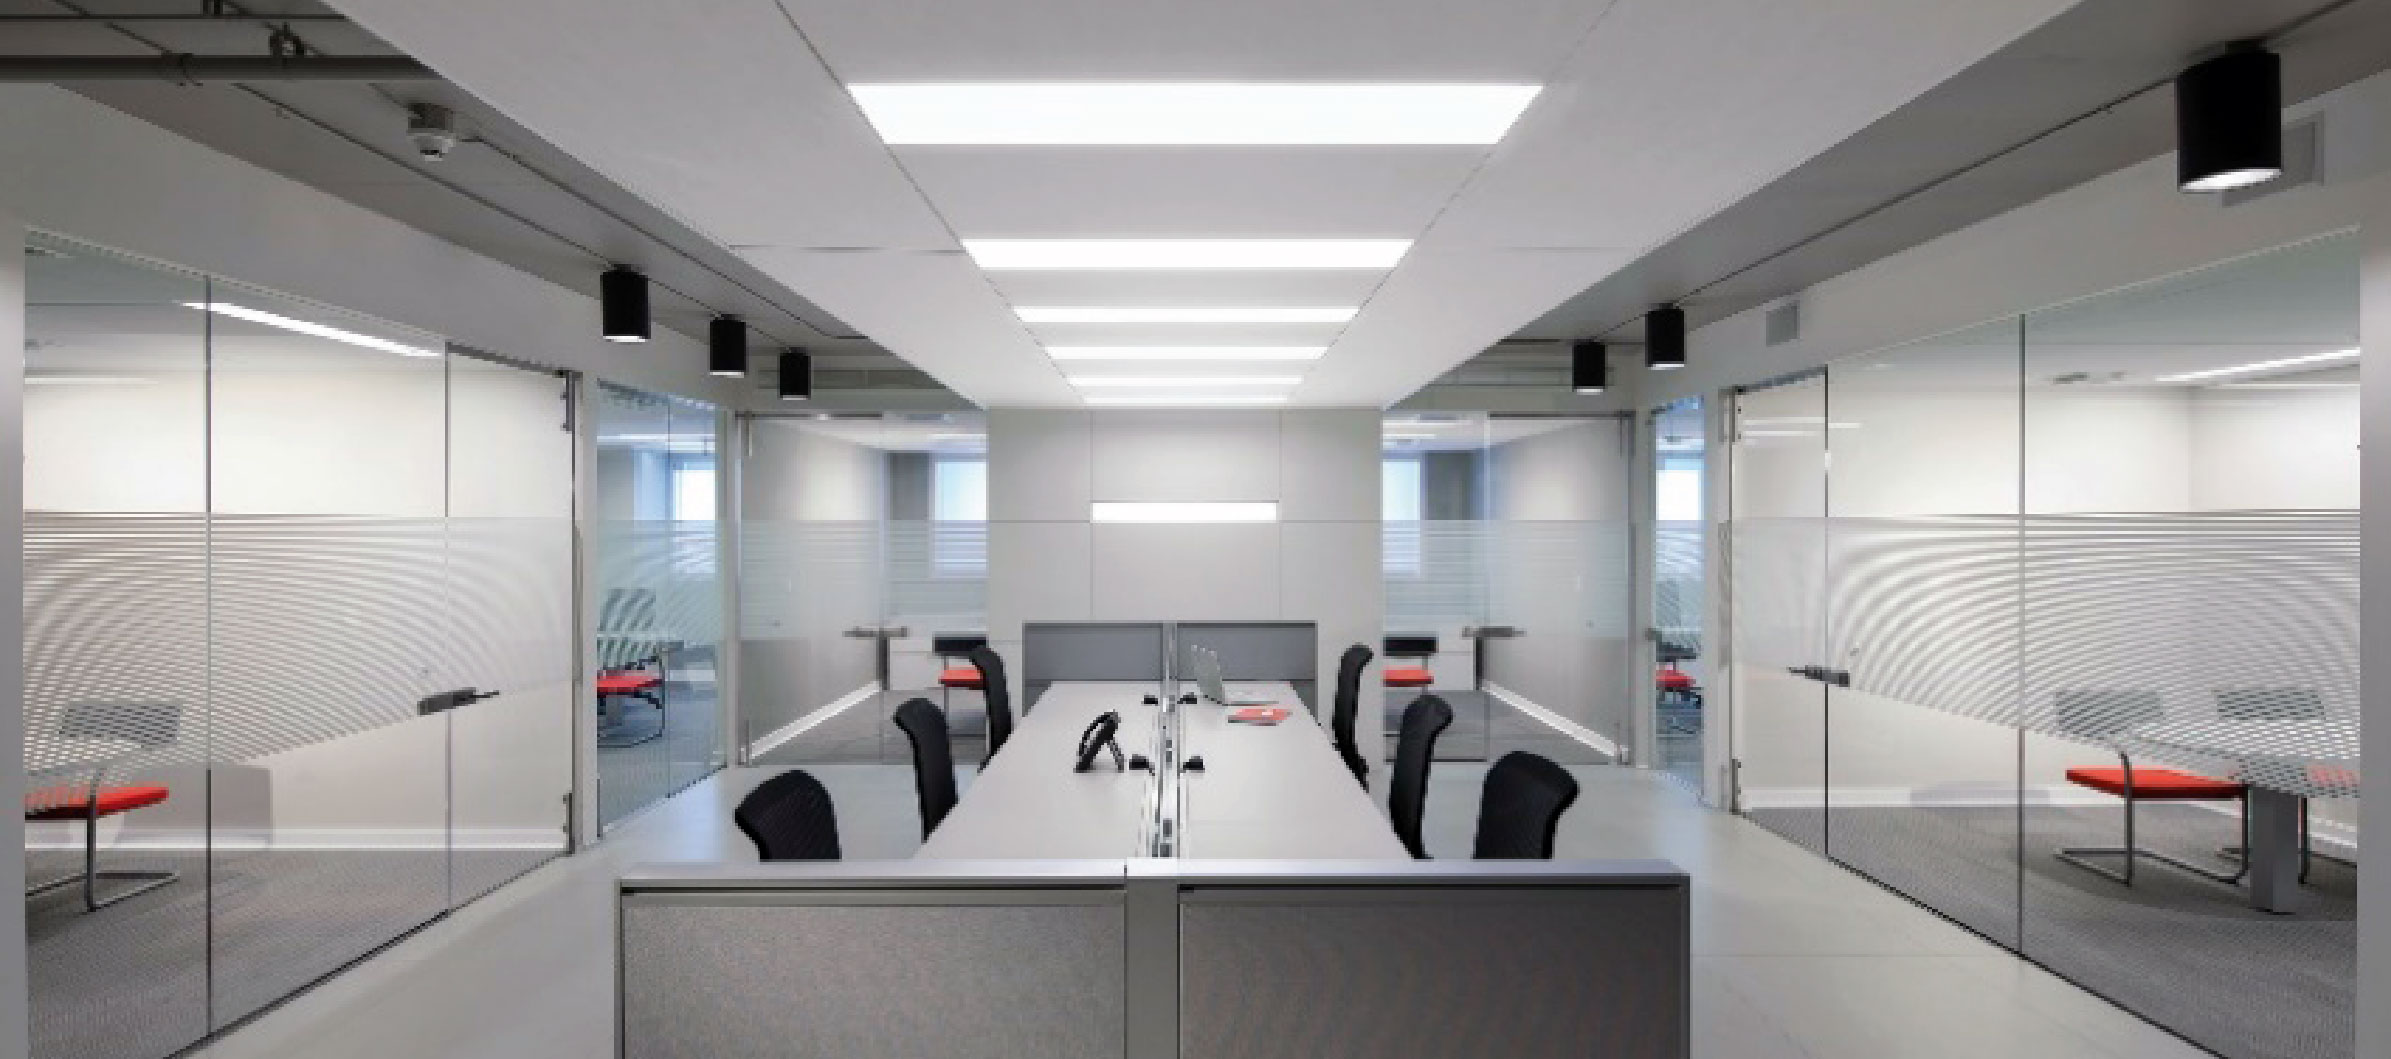 Effect Of Lighting On Productivity In The Workplace